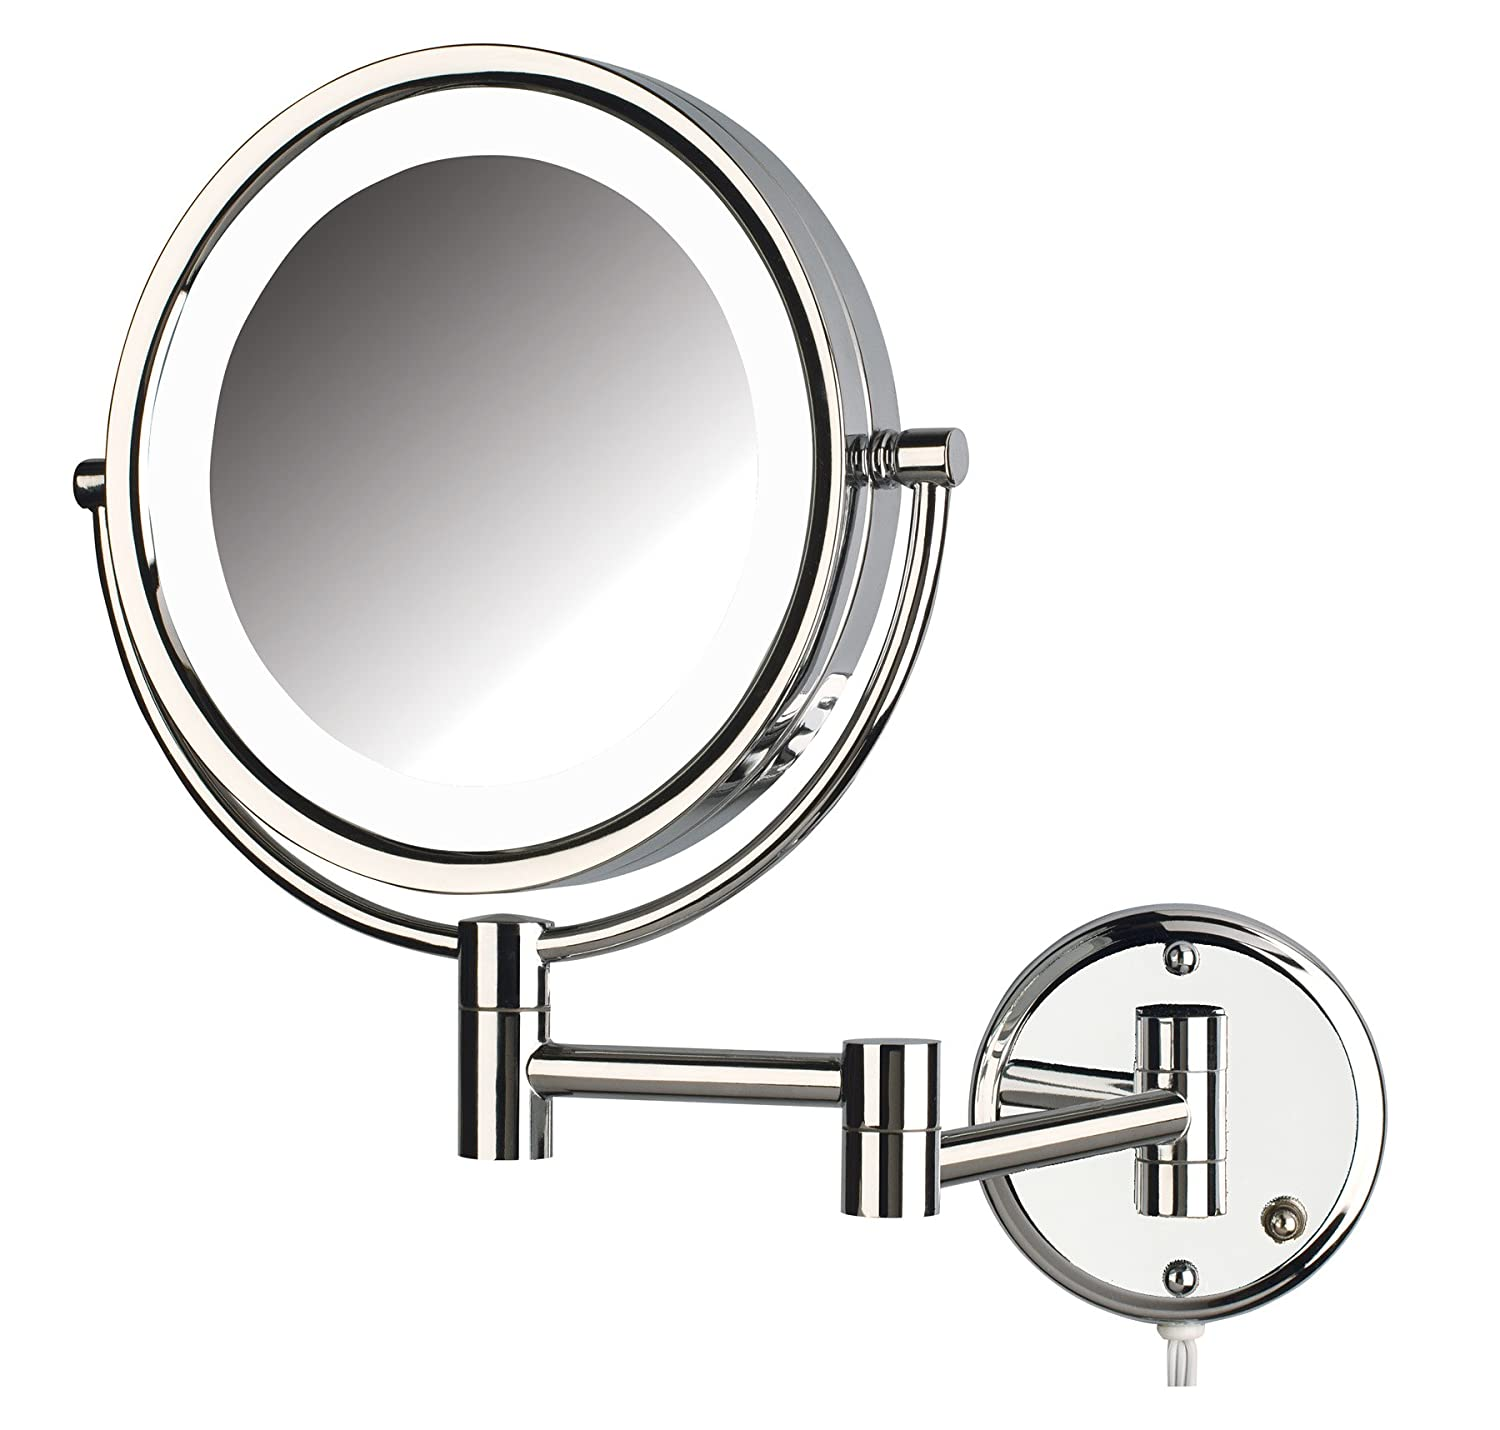 Jerdon HL88NL Two-Sided Swivel LED Lighted Wall Mount Mirror with 8x Magnification Nickel Finish, 8.5-Inch, 64.8-Ounce